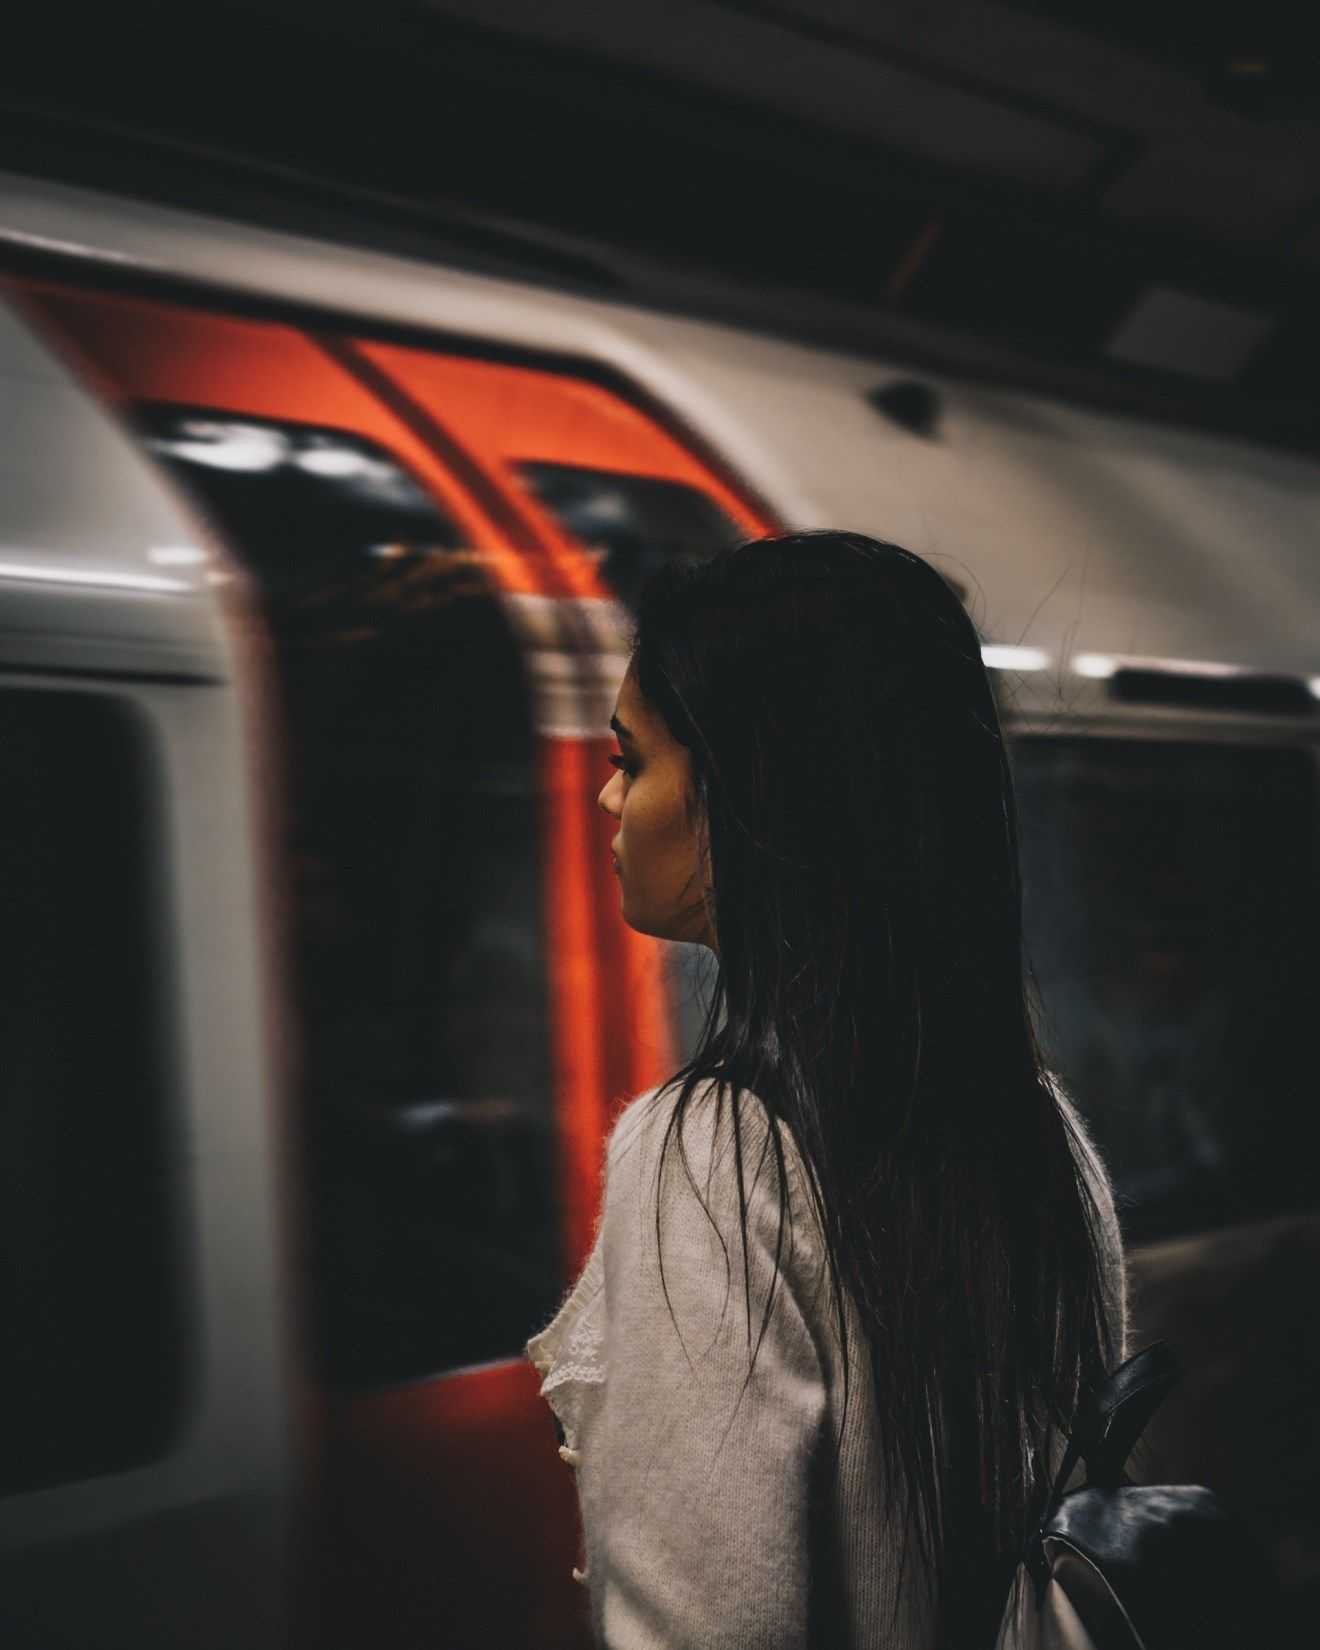 7 Lessons for Commuting Safely During the Covid-19 Outbreak